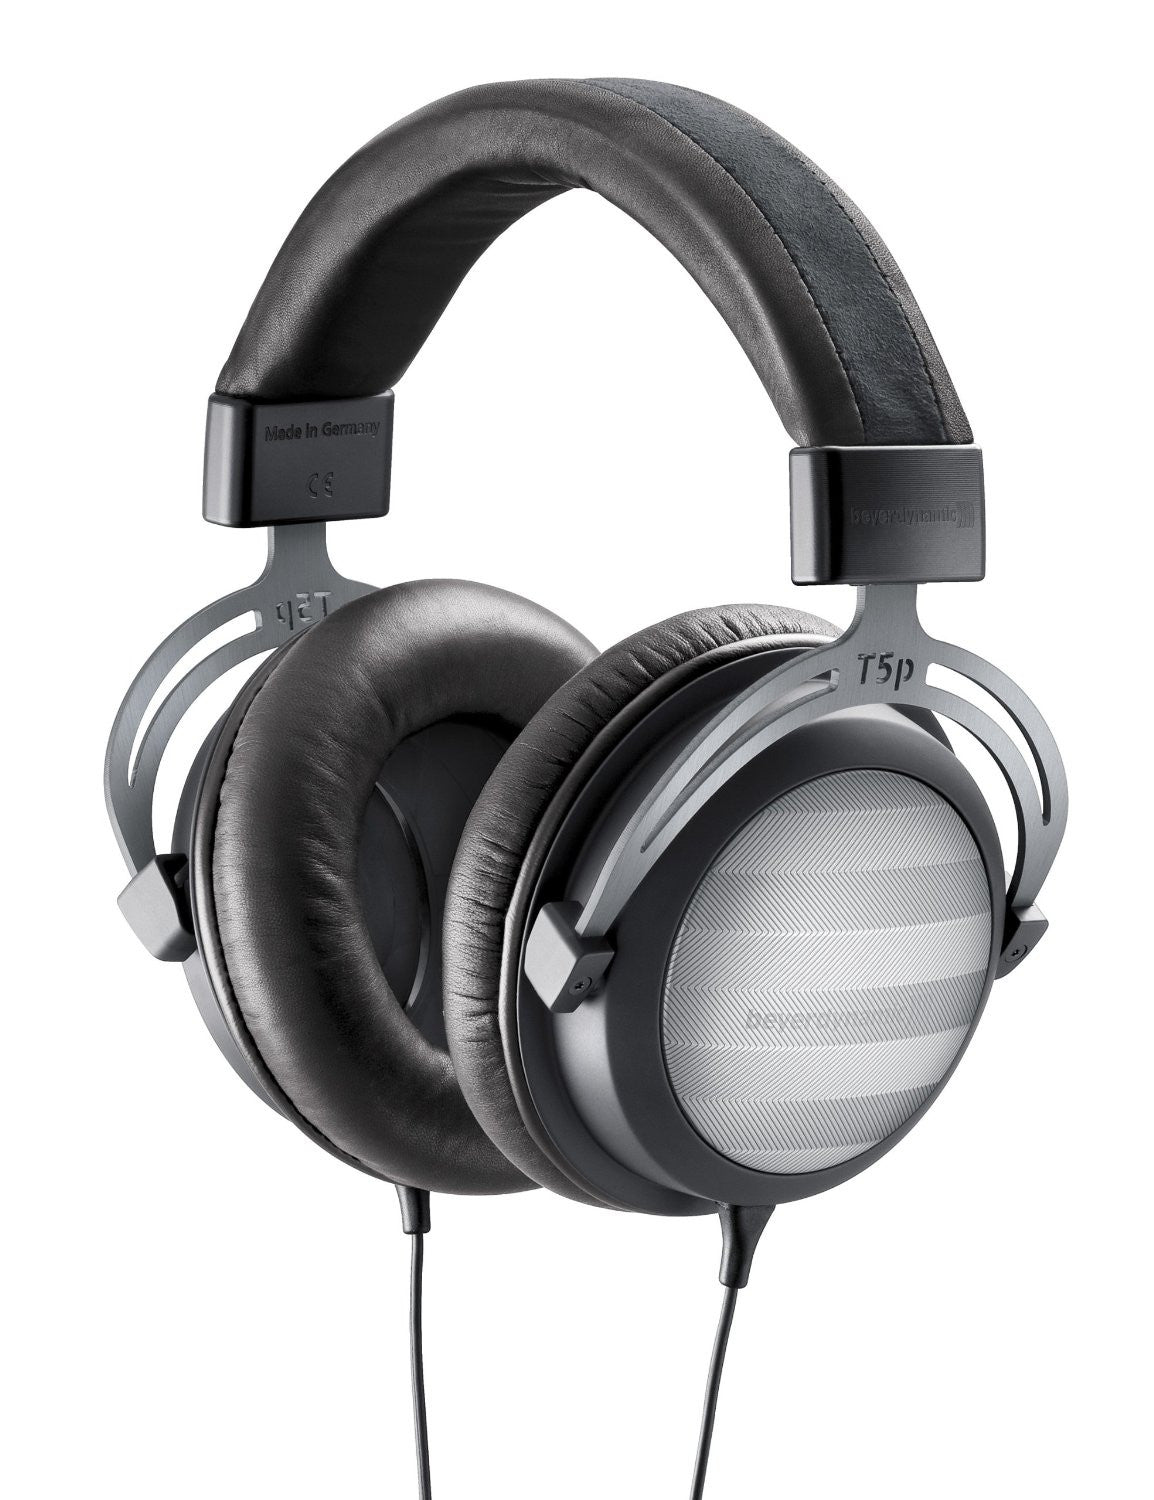 Beyerdynamic T 5 p Portable Audiophile Stereo Headphones